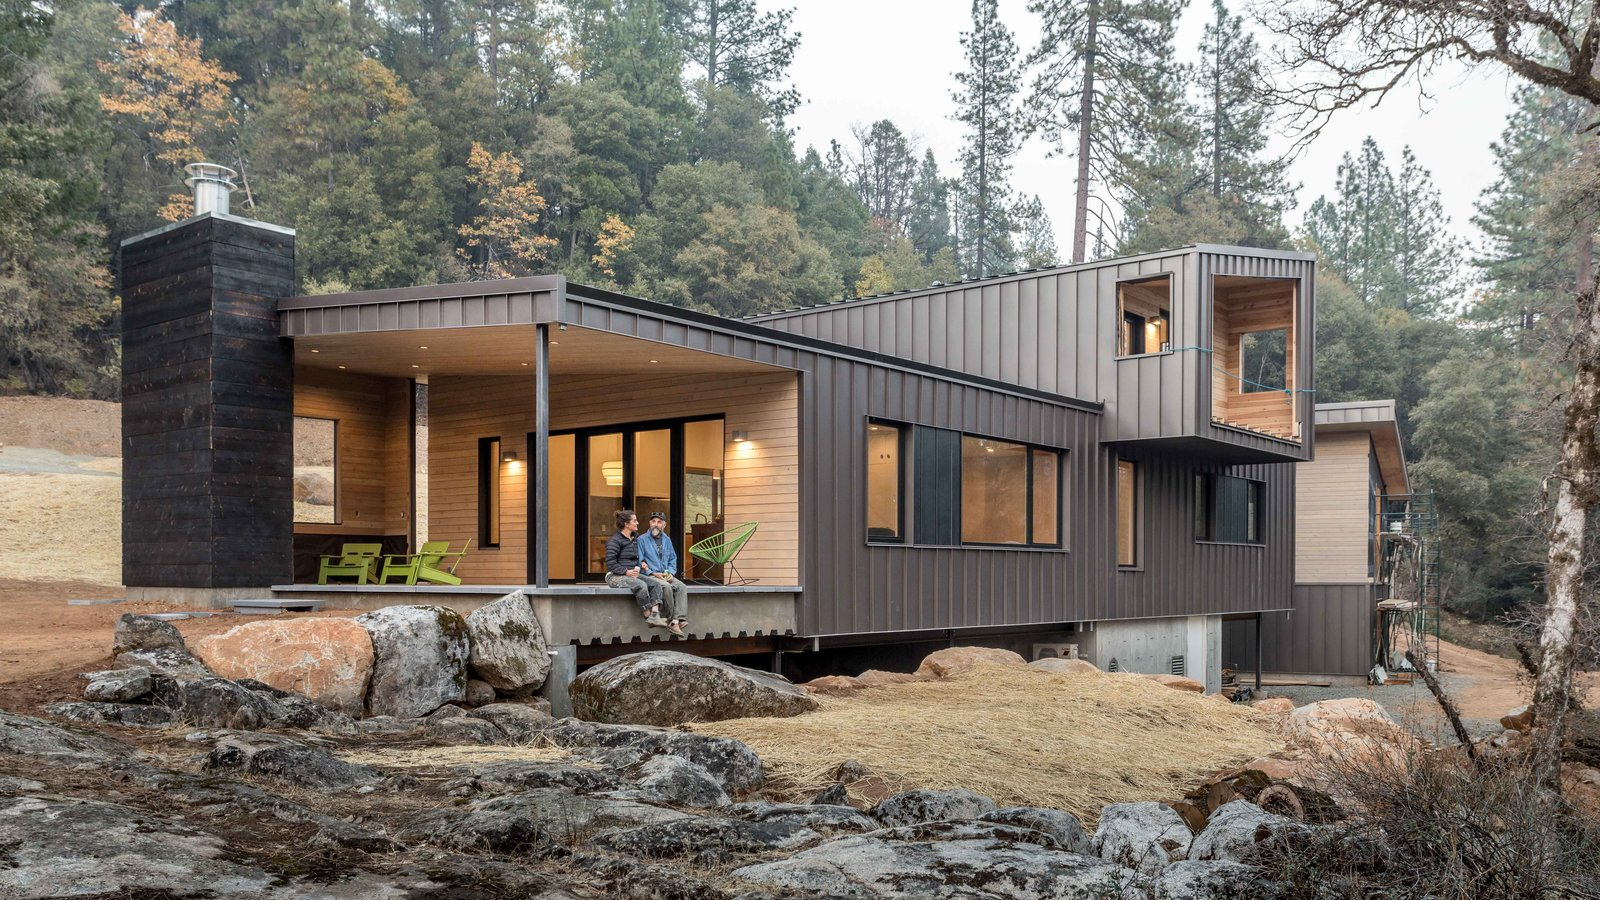 Exterior, Metal Roof Material, House Building Type, Wood Siding Material, Shed RoofLine, and Metal Siding Material Exterior view with designer and builder ... before the house was 100% completed  Photos from Good Haus